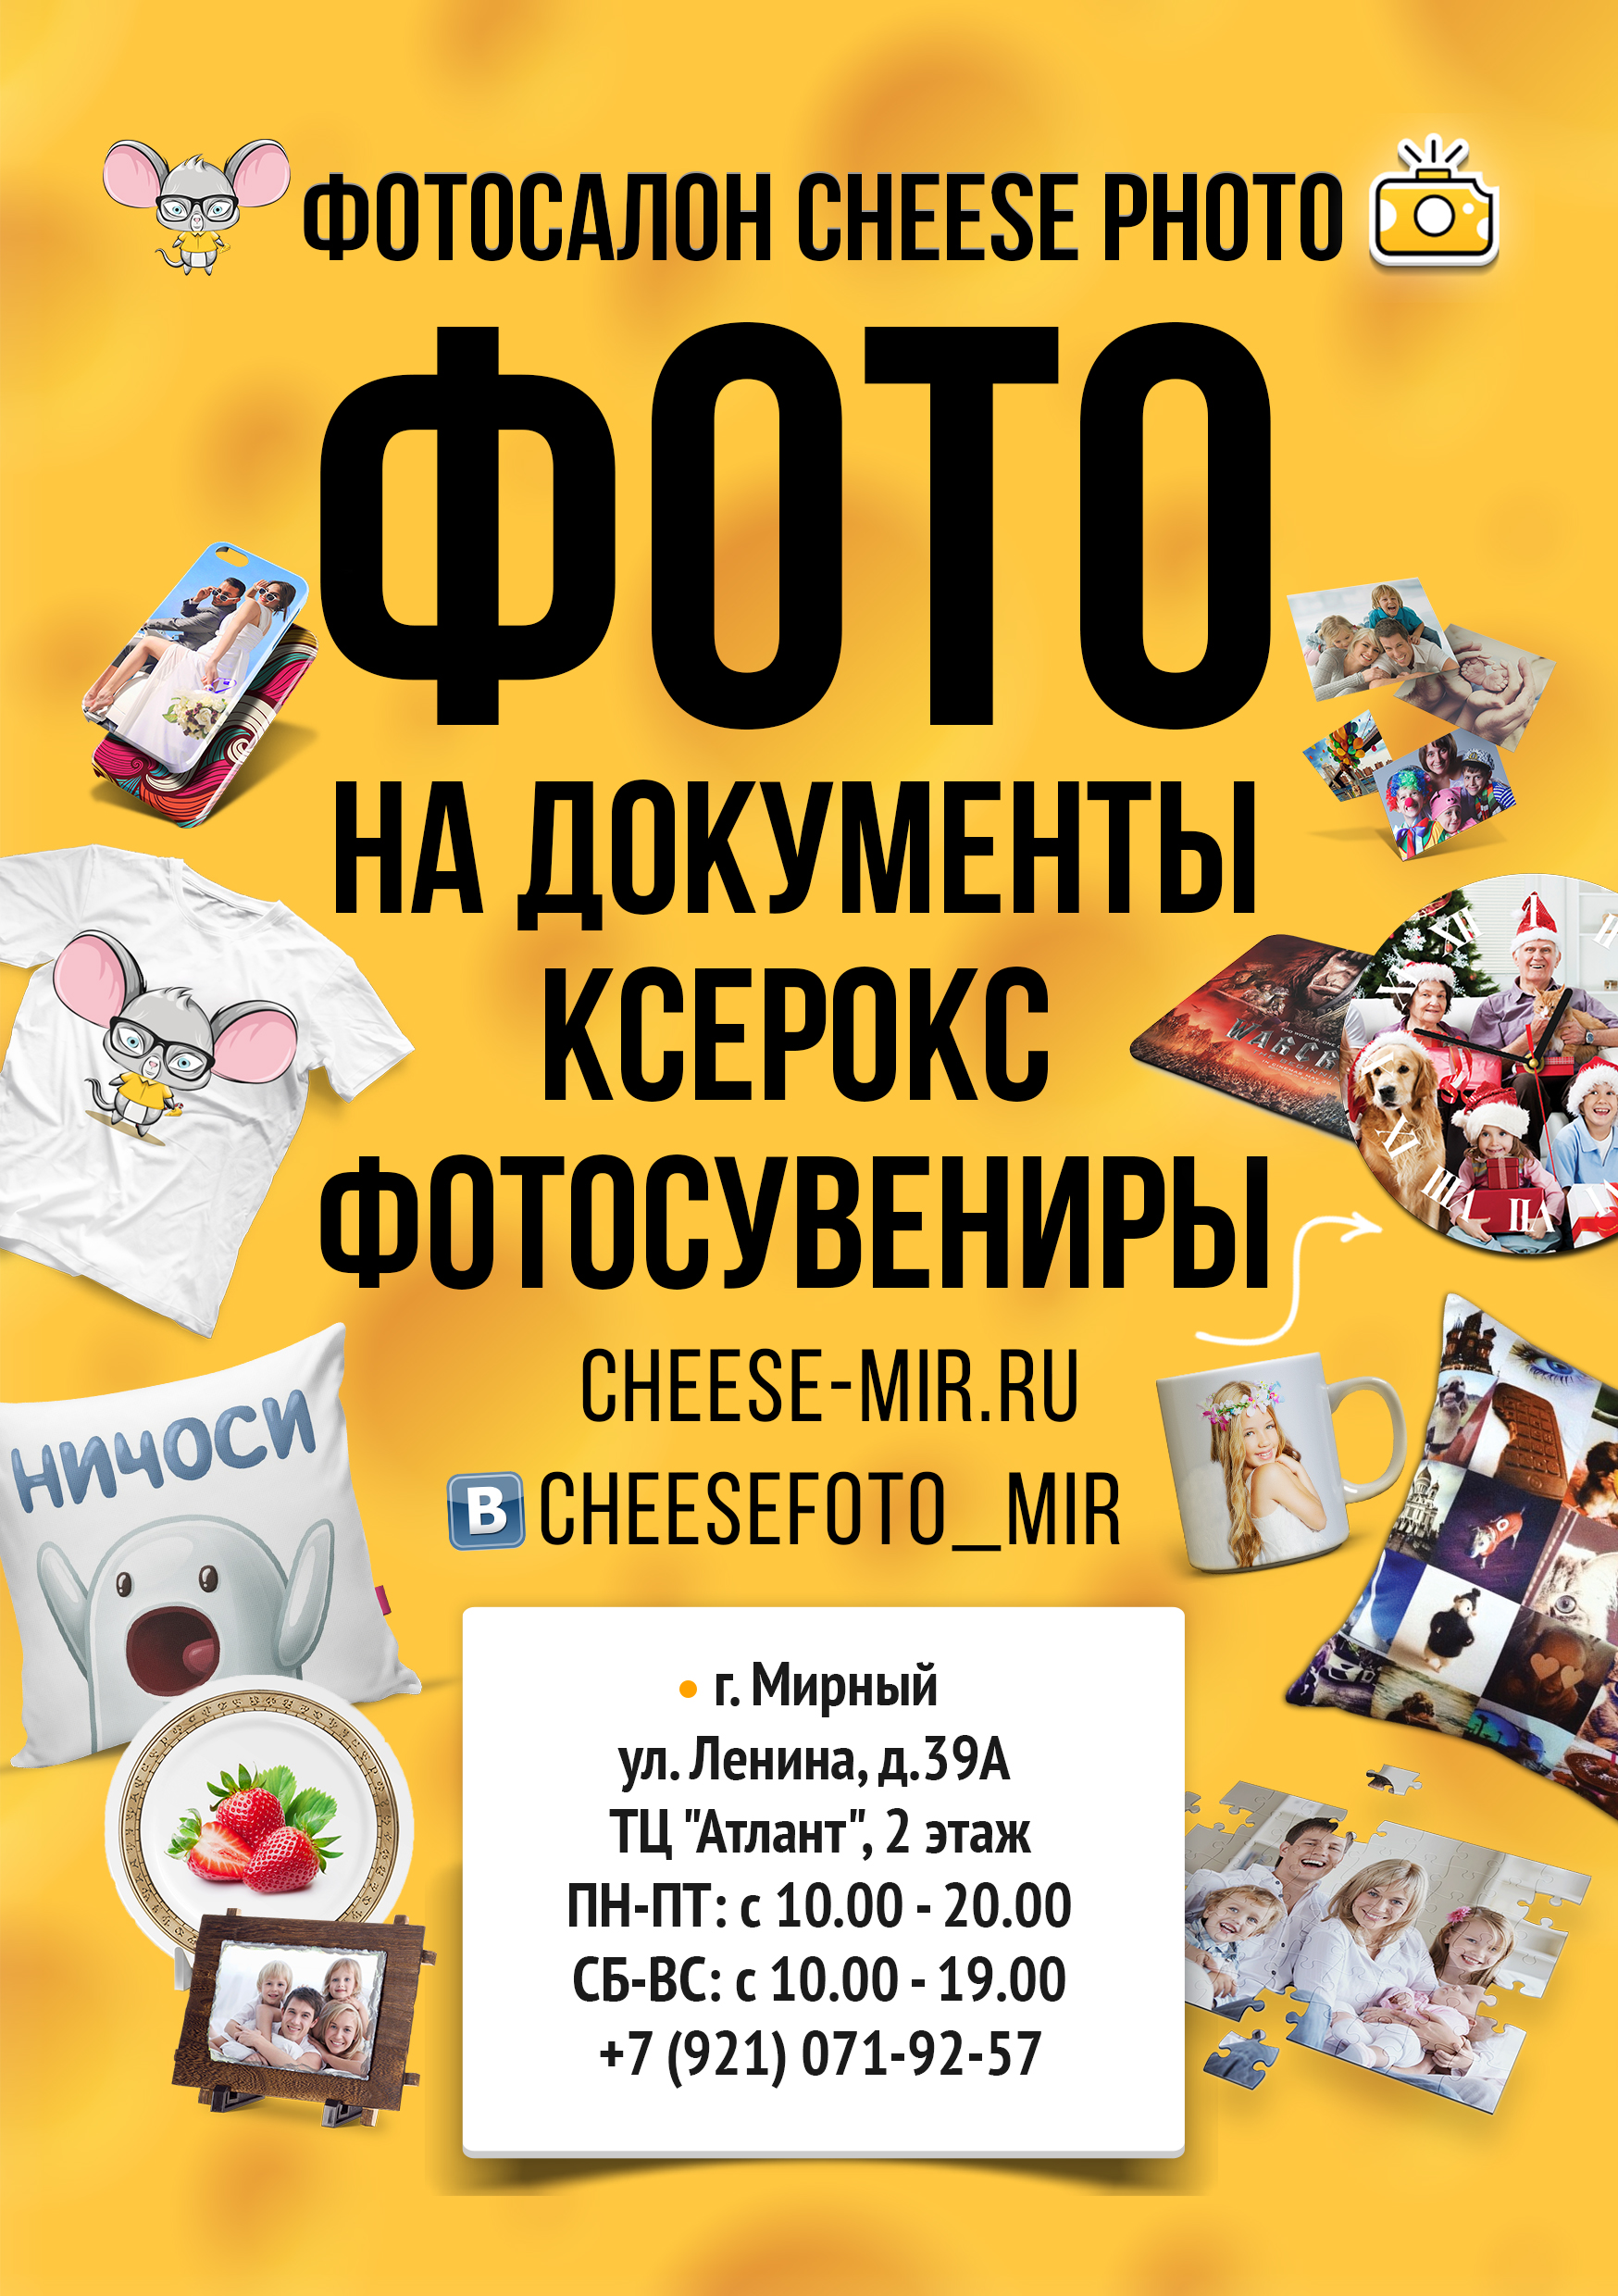 Cheese Photo Мирный